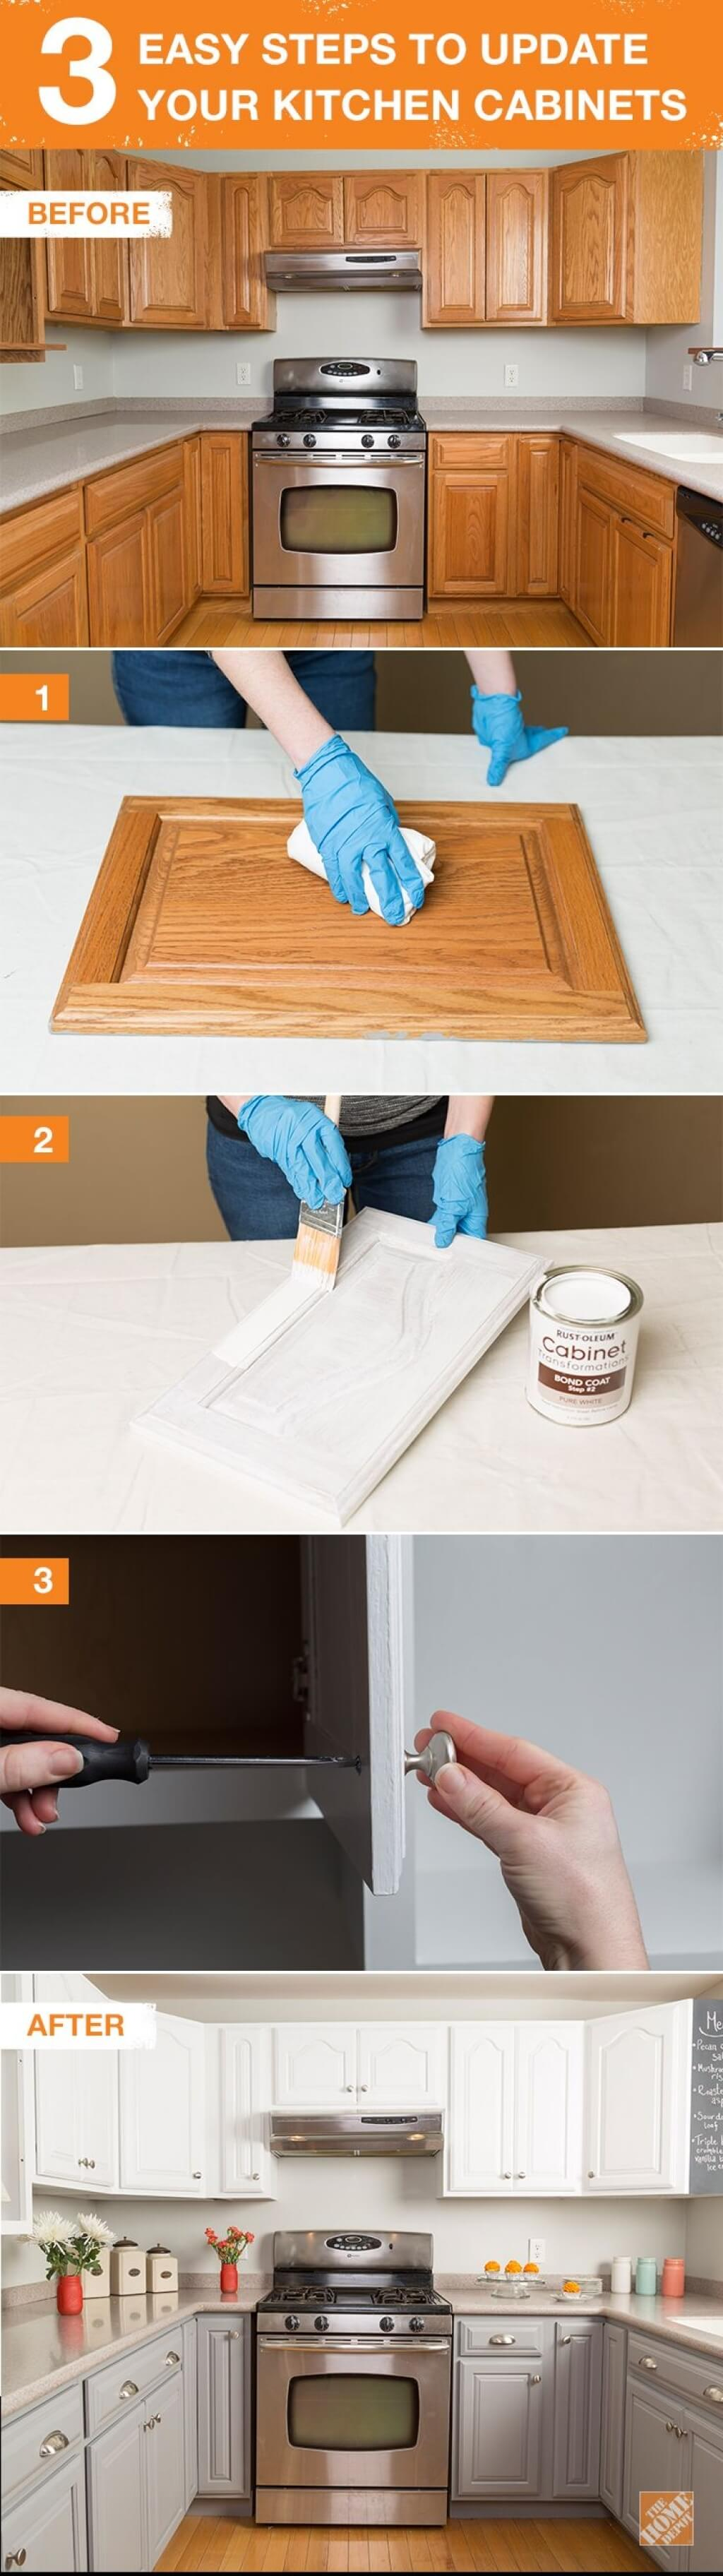 Budget Friendly Kitchen Makeover Ideas for Your Cabinets